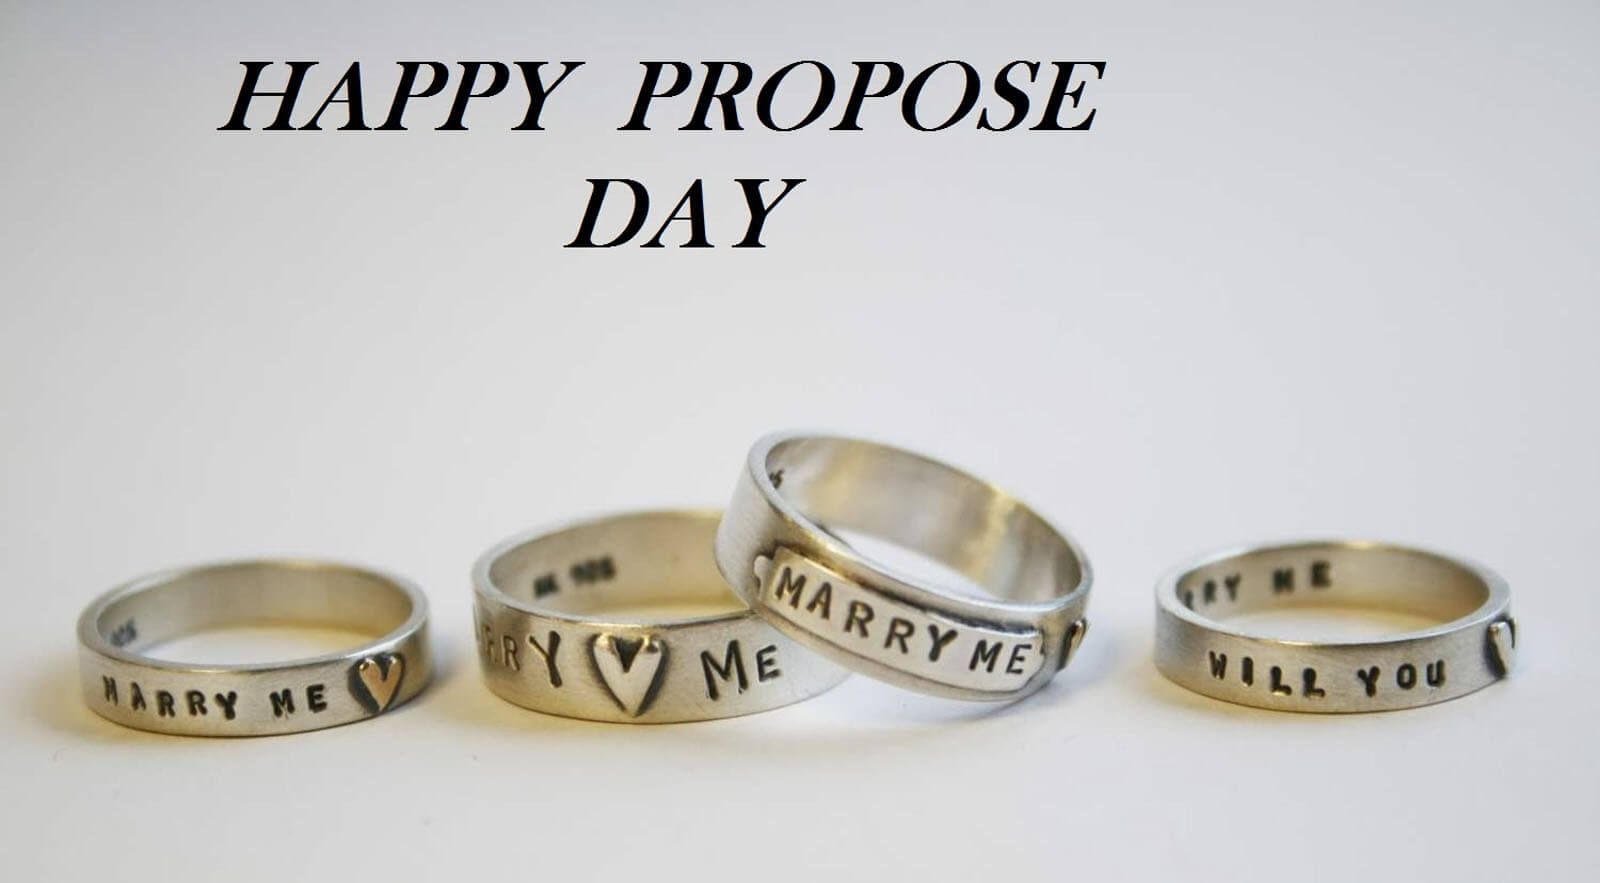 happy propose day will you marry me rings february 8th hd wallpaper